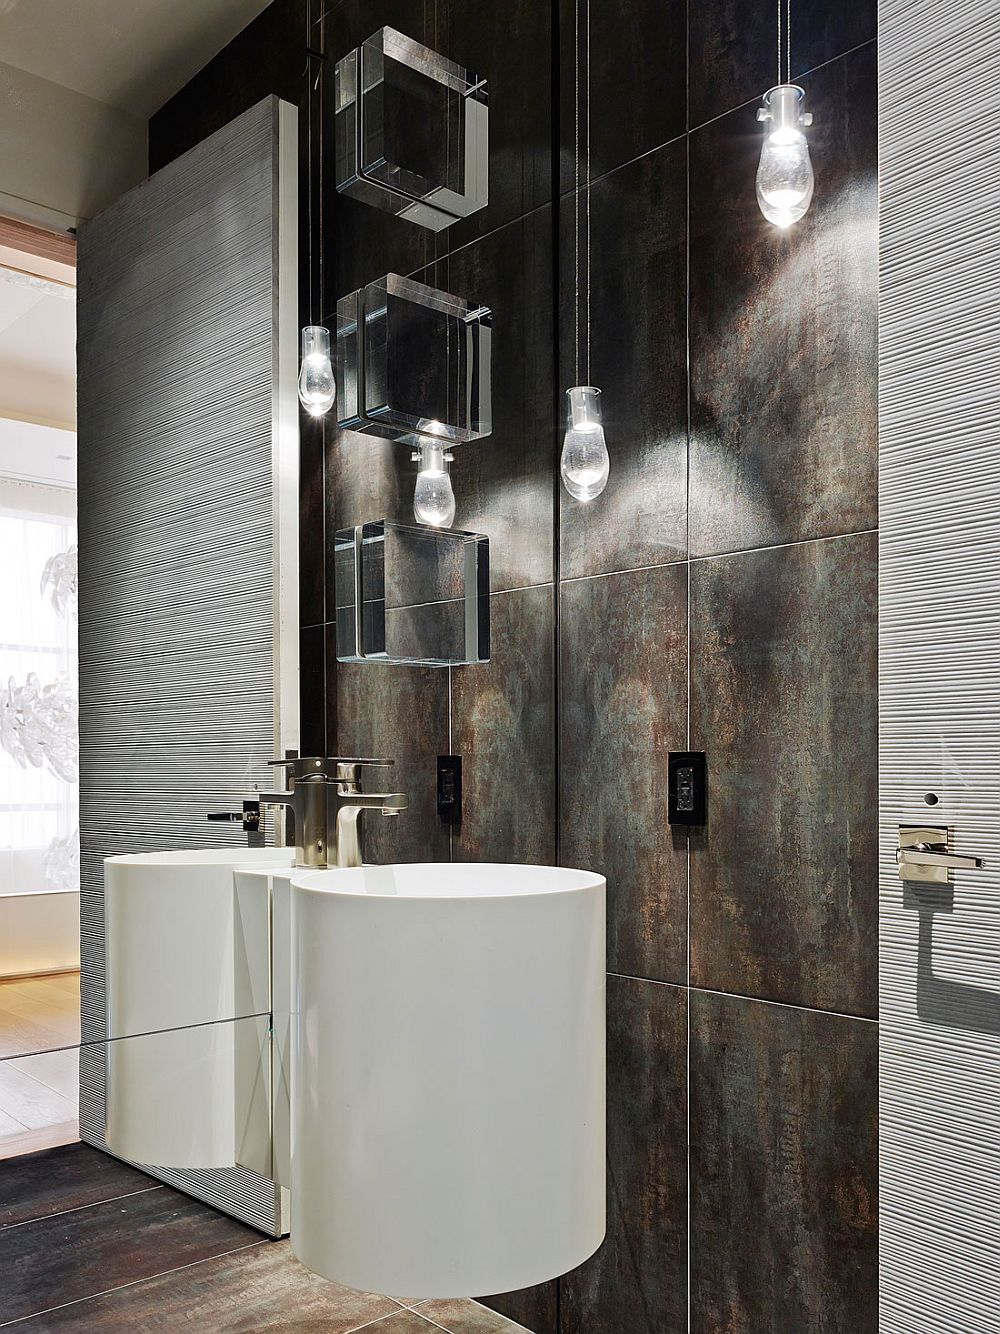 Minimal bathroom with smart lighting